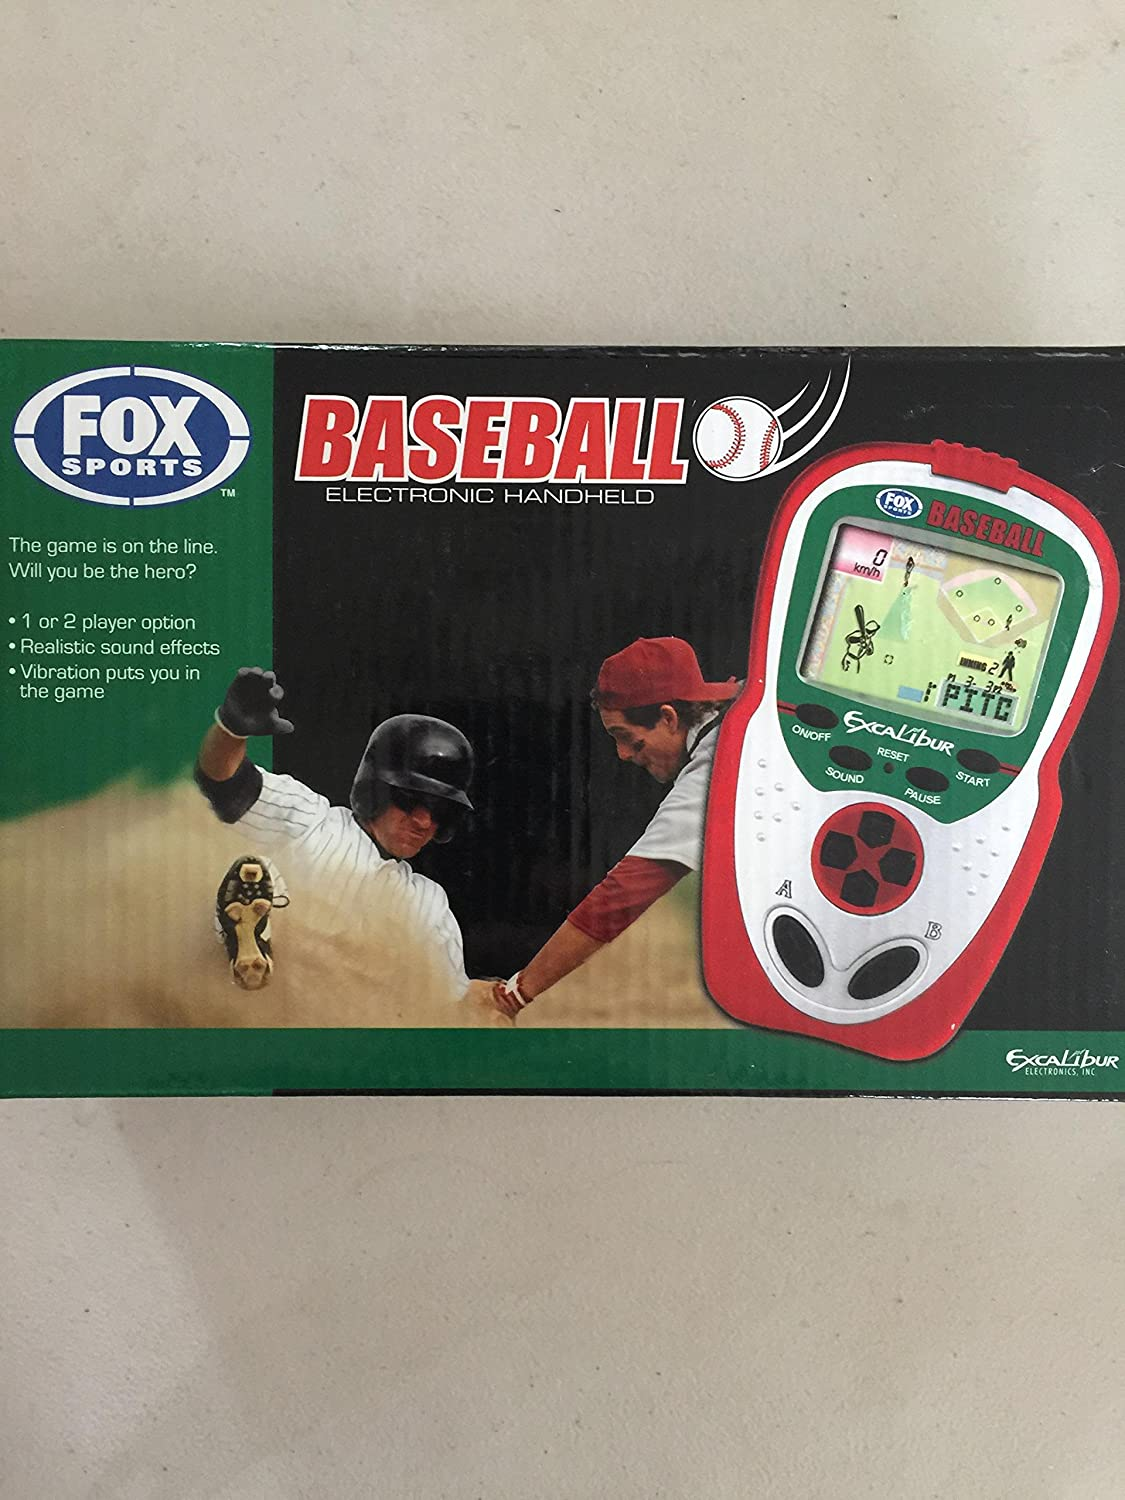 Excalibur FX202 Fox Sports Baseball Handheld by Archbrook Laguna (formerly BDI) - DROPSHIP [並行輸入品] B001BJ6KBM